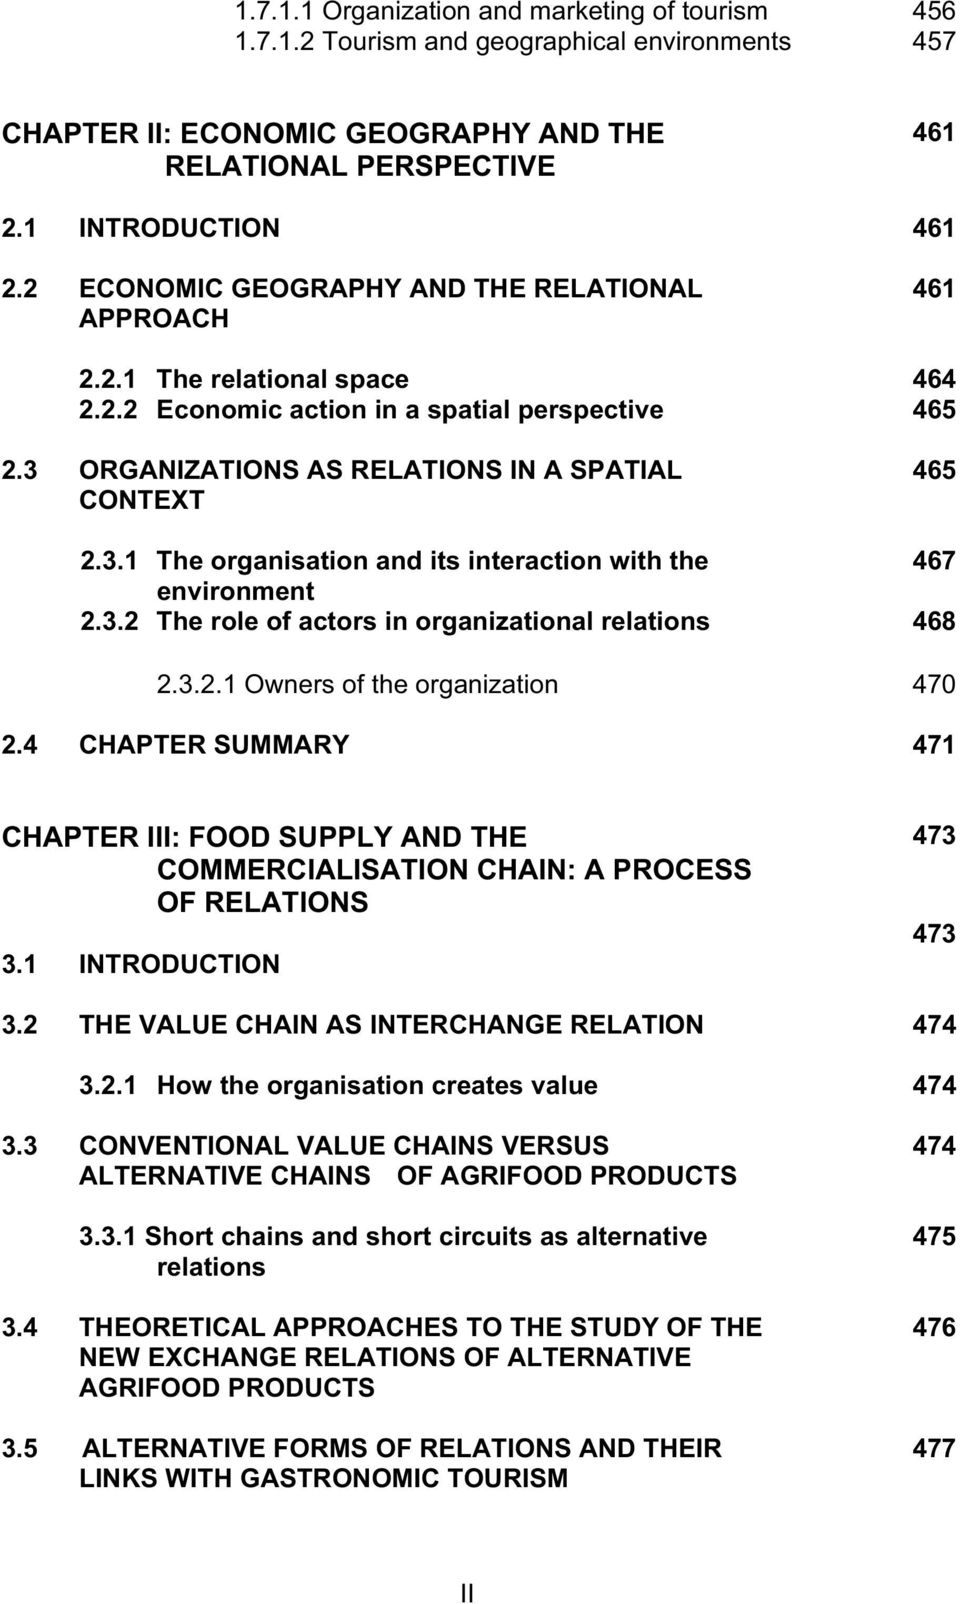 ORGANIZATIONS AS RELATIONS IN A SPATIAL CONTEXT 465 2.3.1 The organisation and its interaction with the 467 environment 2.3.2 The role of actors in organizational relations 468 2.3.2.1 Owners of the organization 470 2.